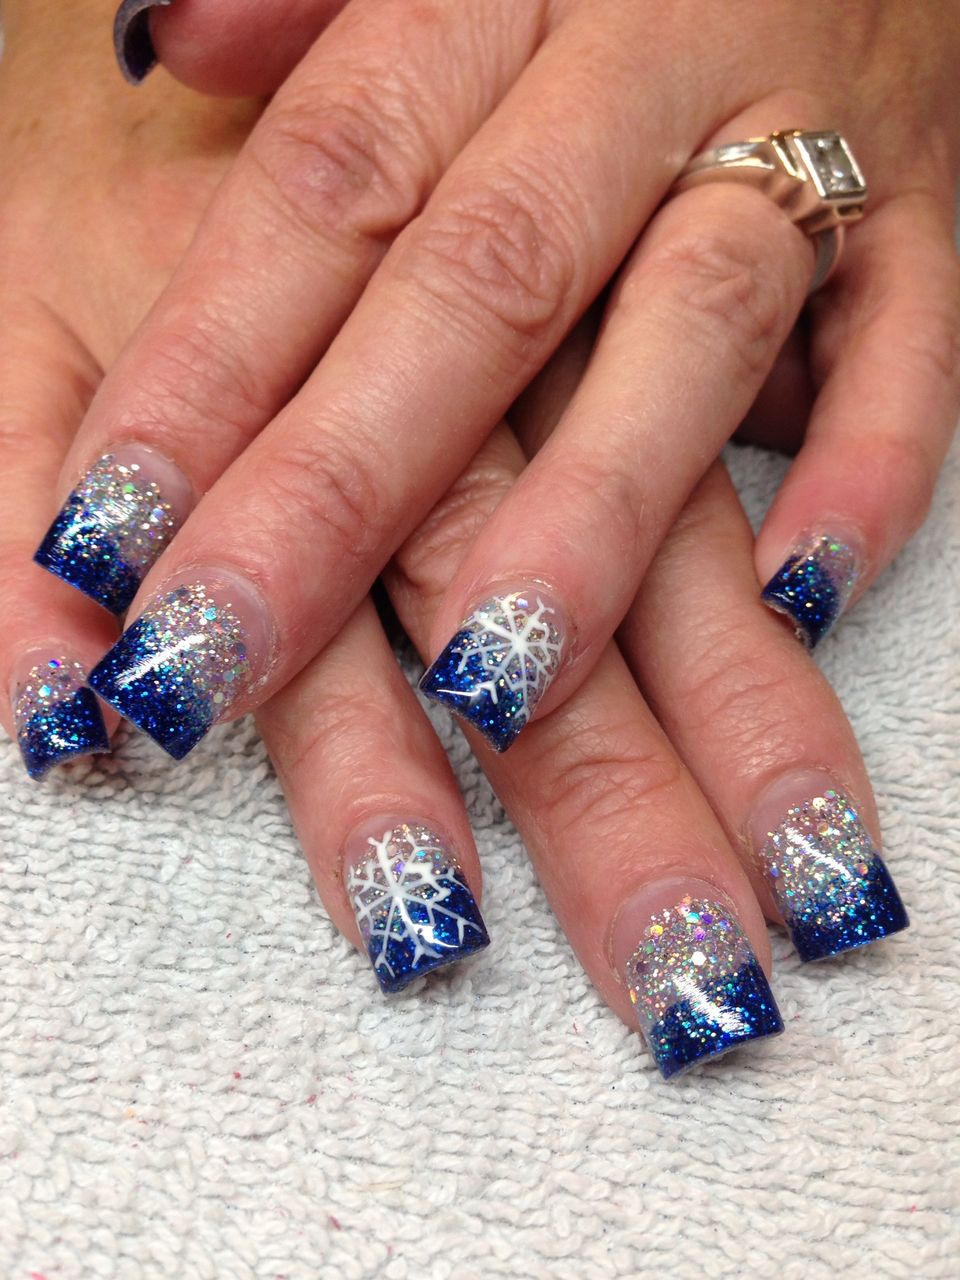 Sweet acrylic nails ideas for winter 28